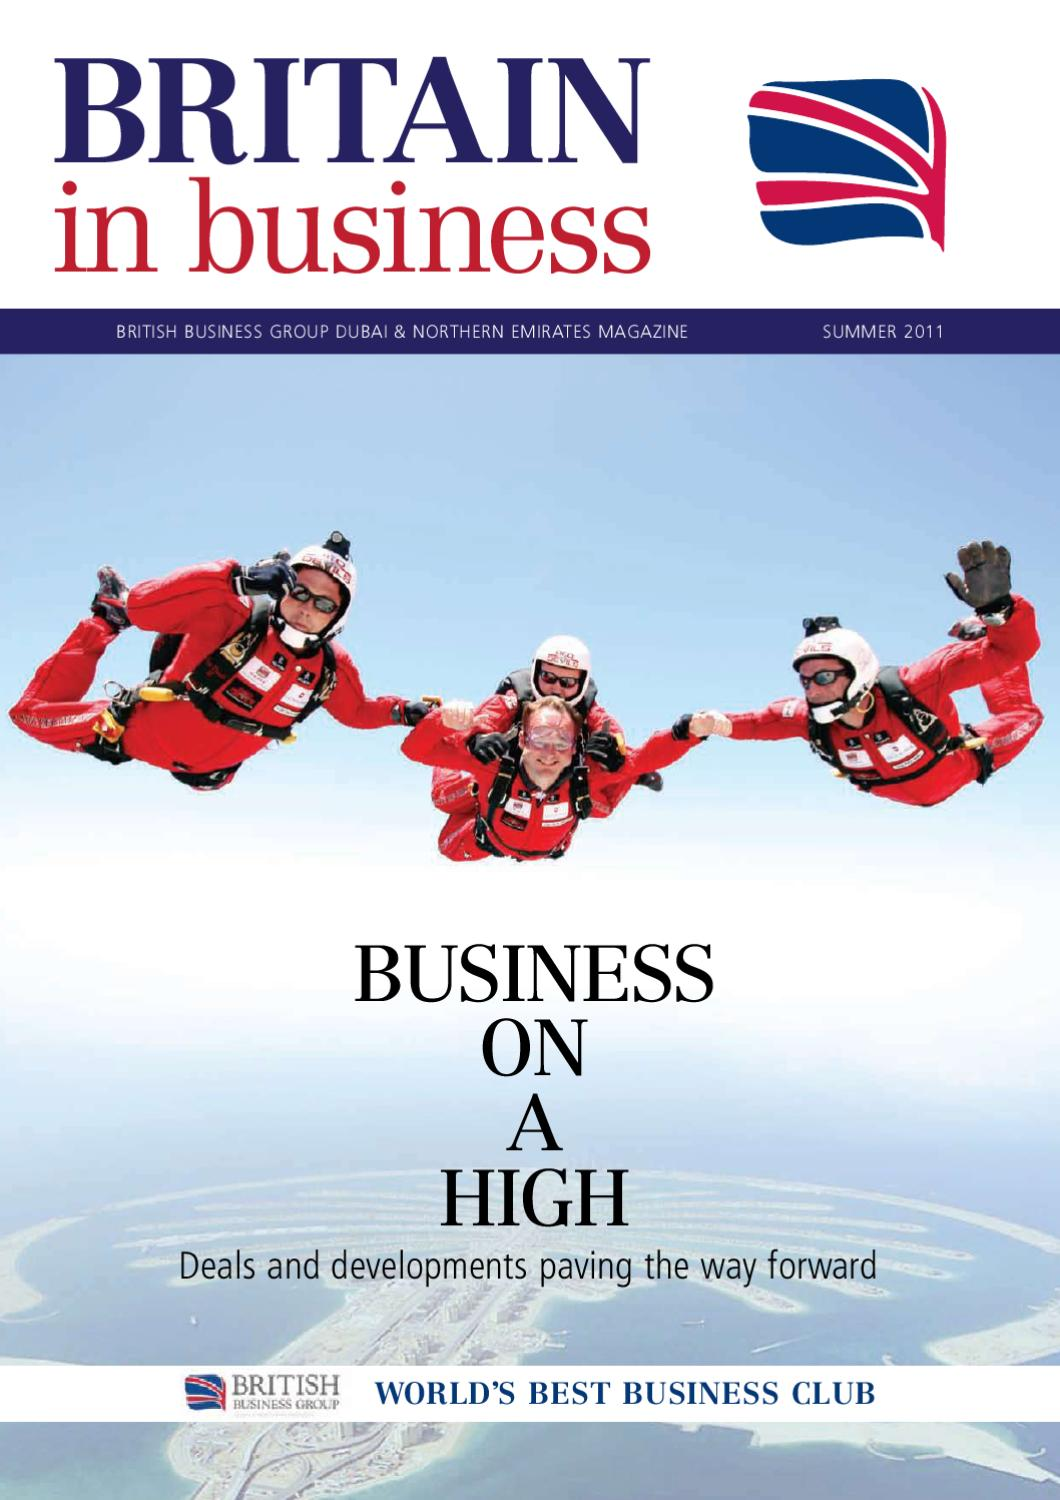 9ef0c9bb964 Britain in Business Summer 2011 by Motivate Publishing - issuu